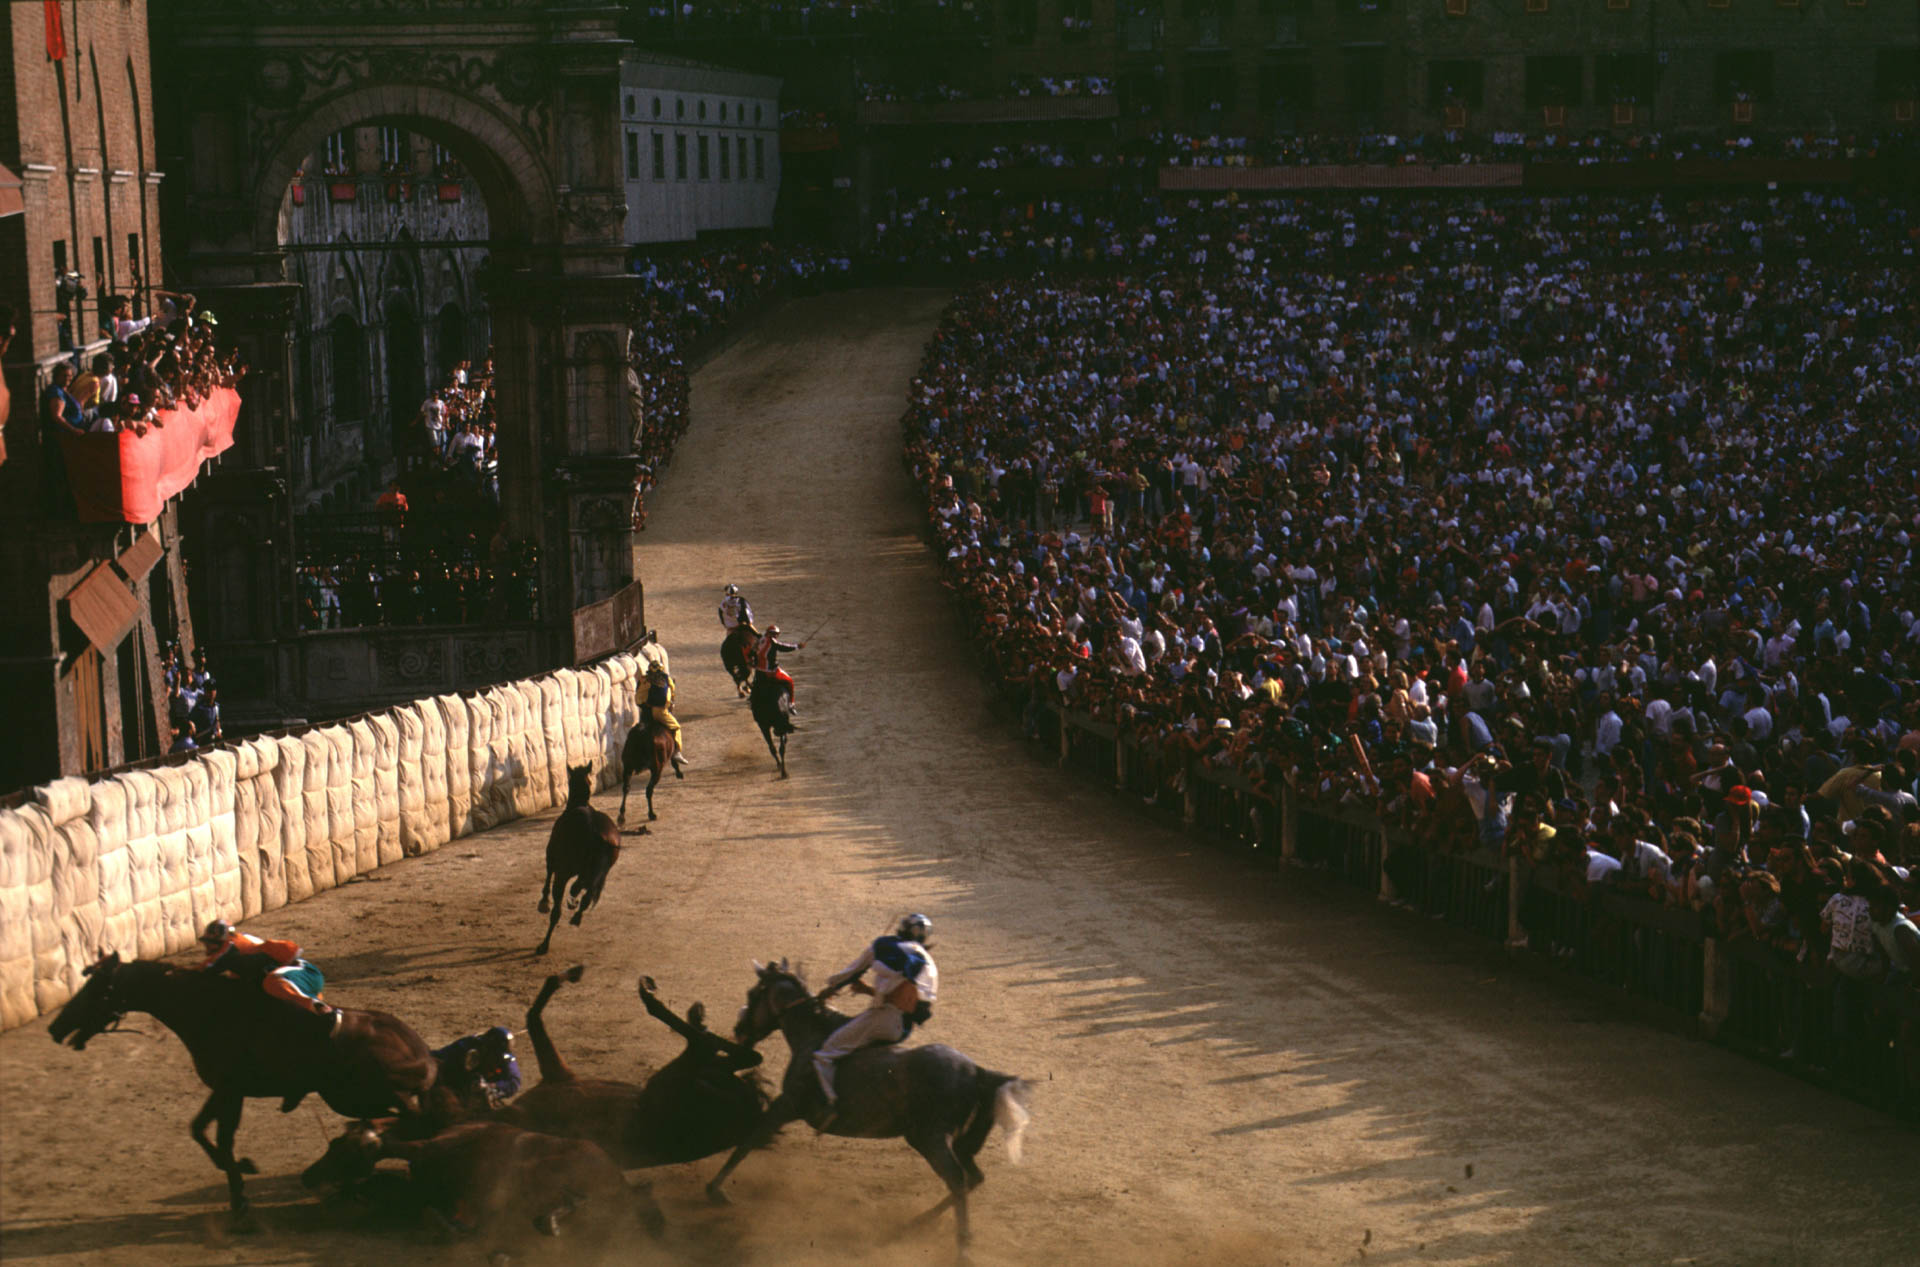 Siena, 1 July 1991 At the second S.Martino bend Chiocciola, Selva, Onda and Nicchio fall off their horses.